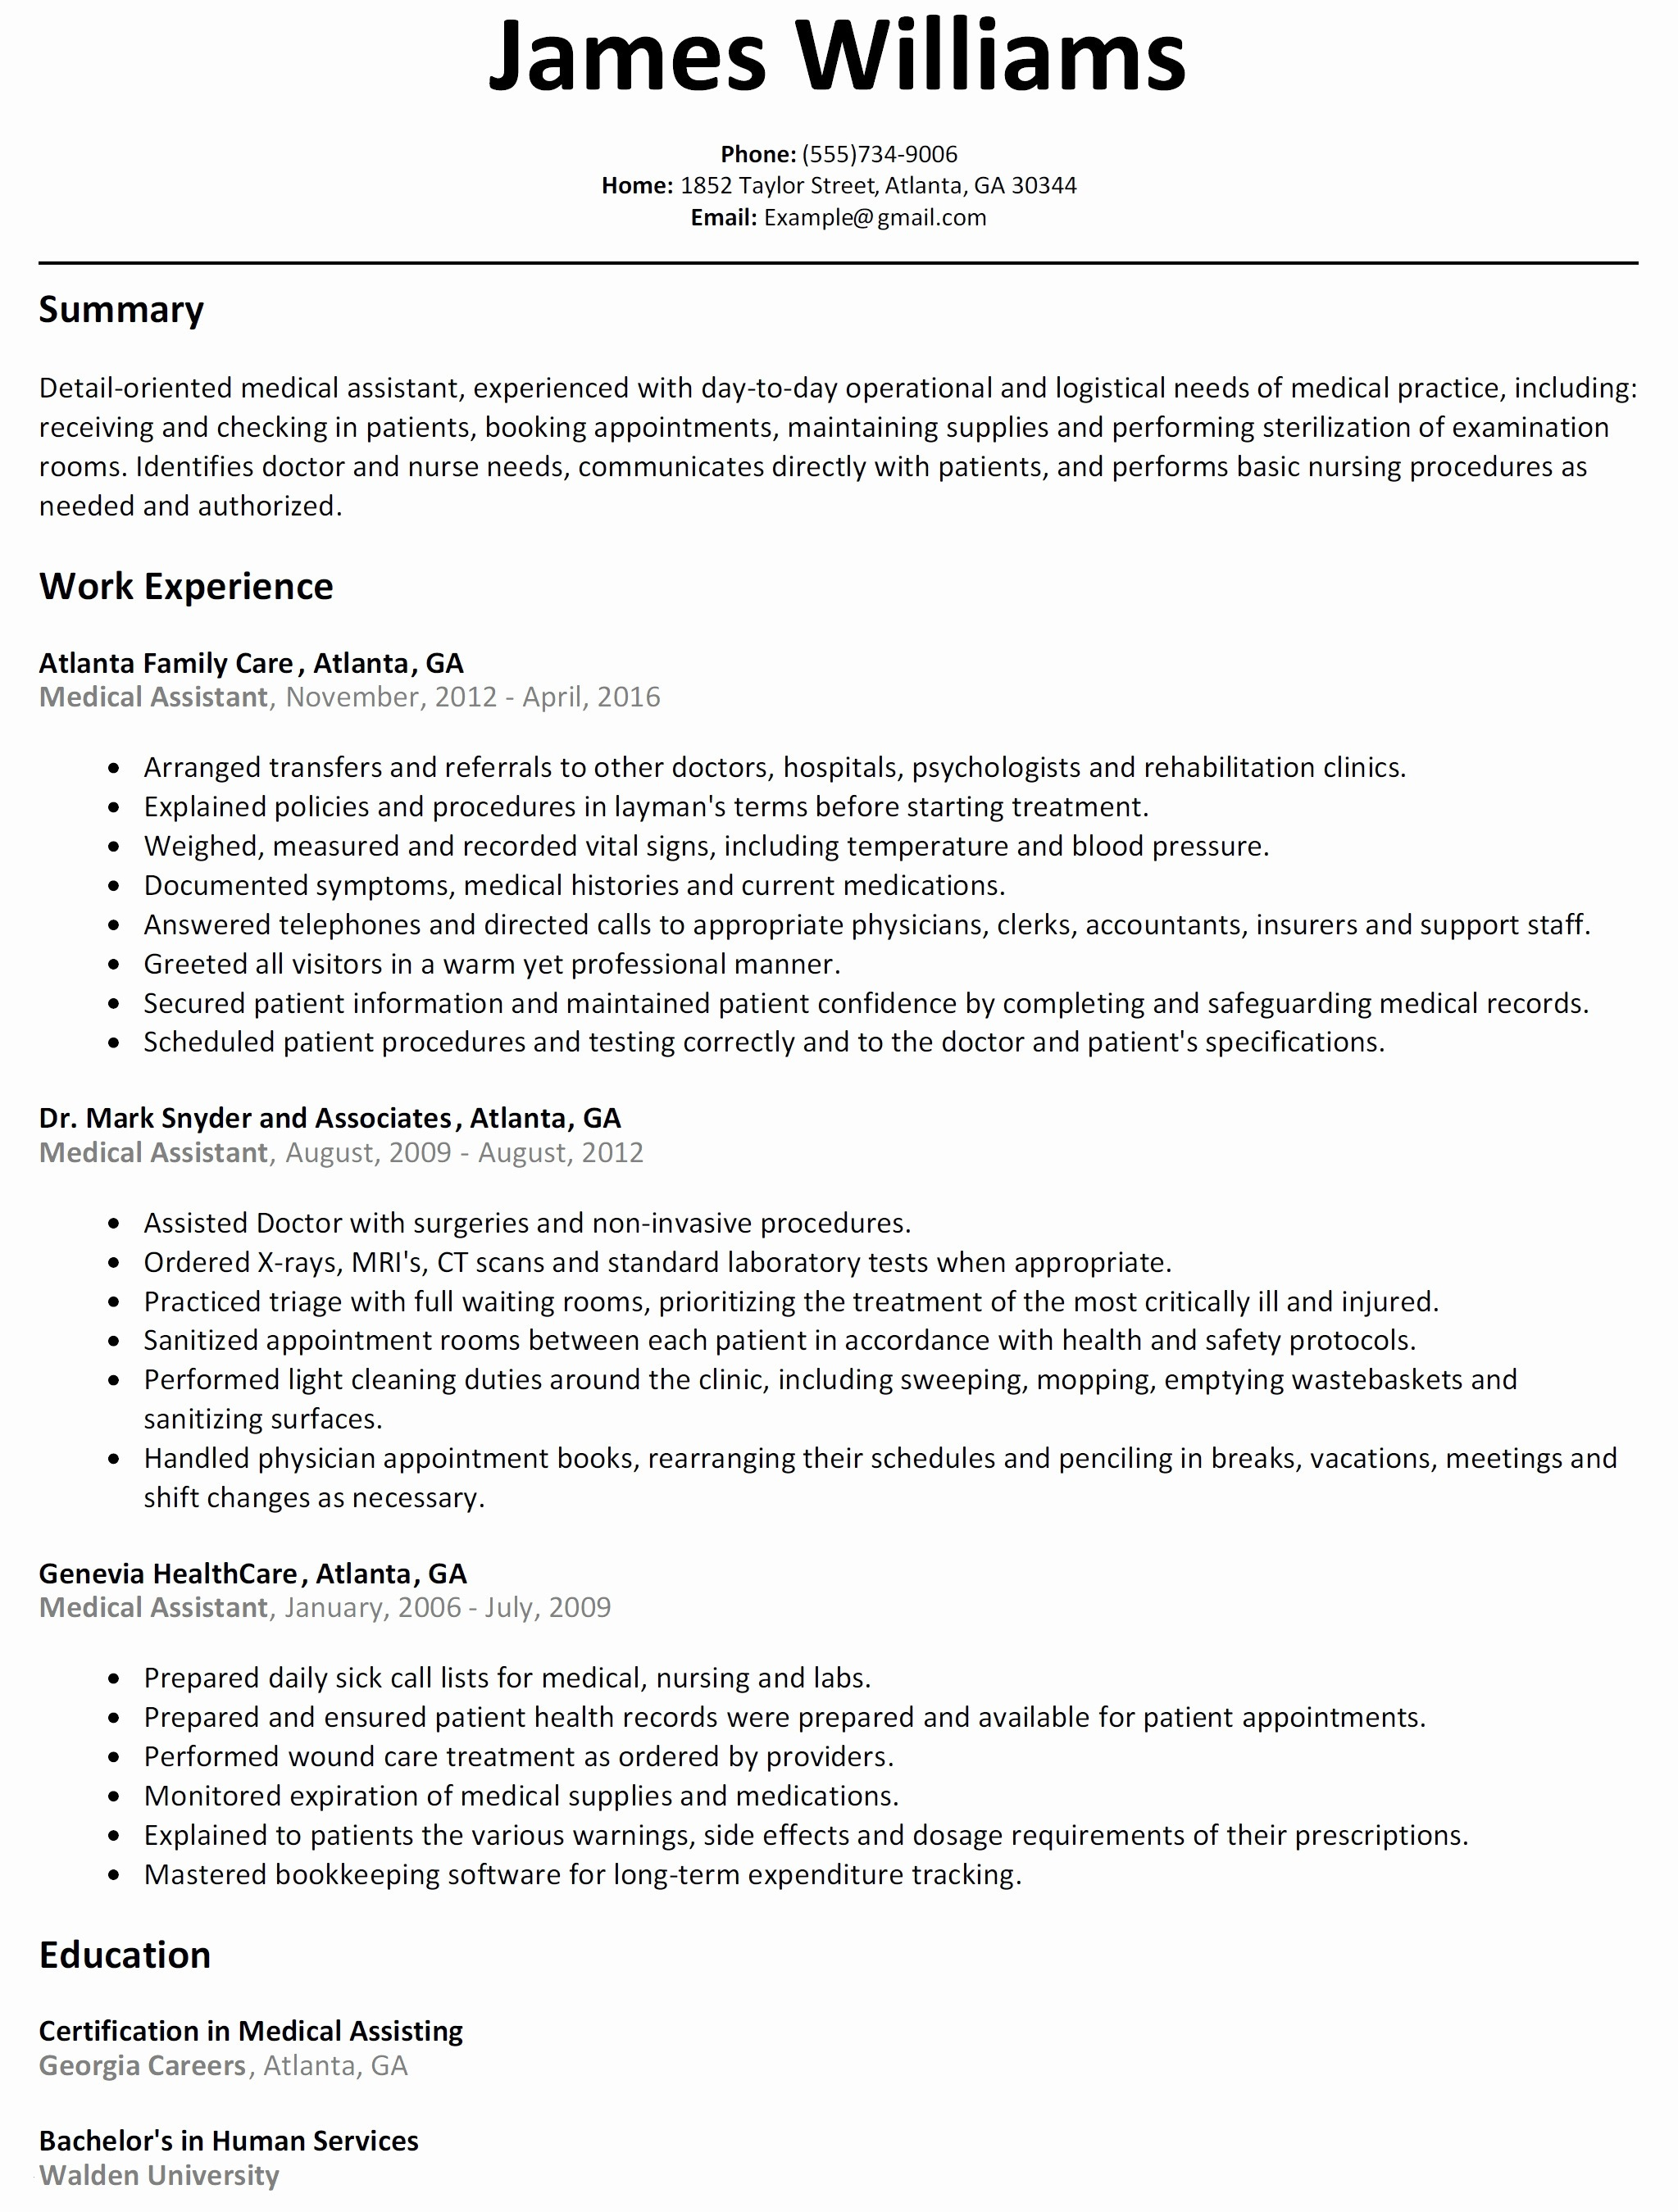 Unique Resume Templates - Interesting Resume format Awesome Simple Resume format In Word